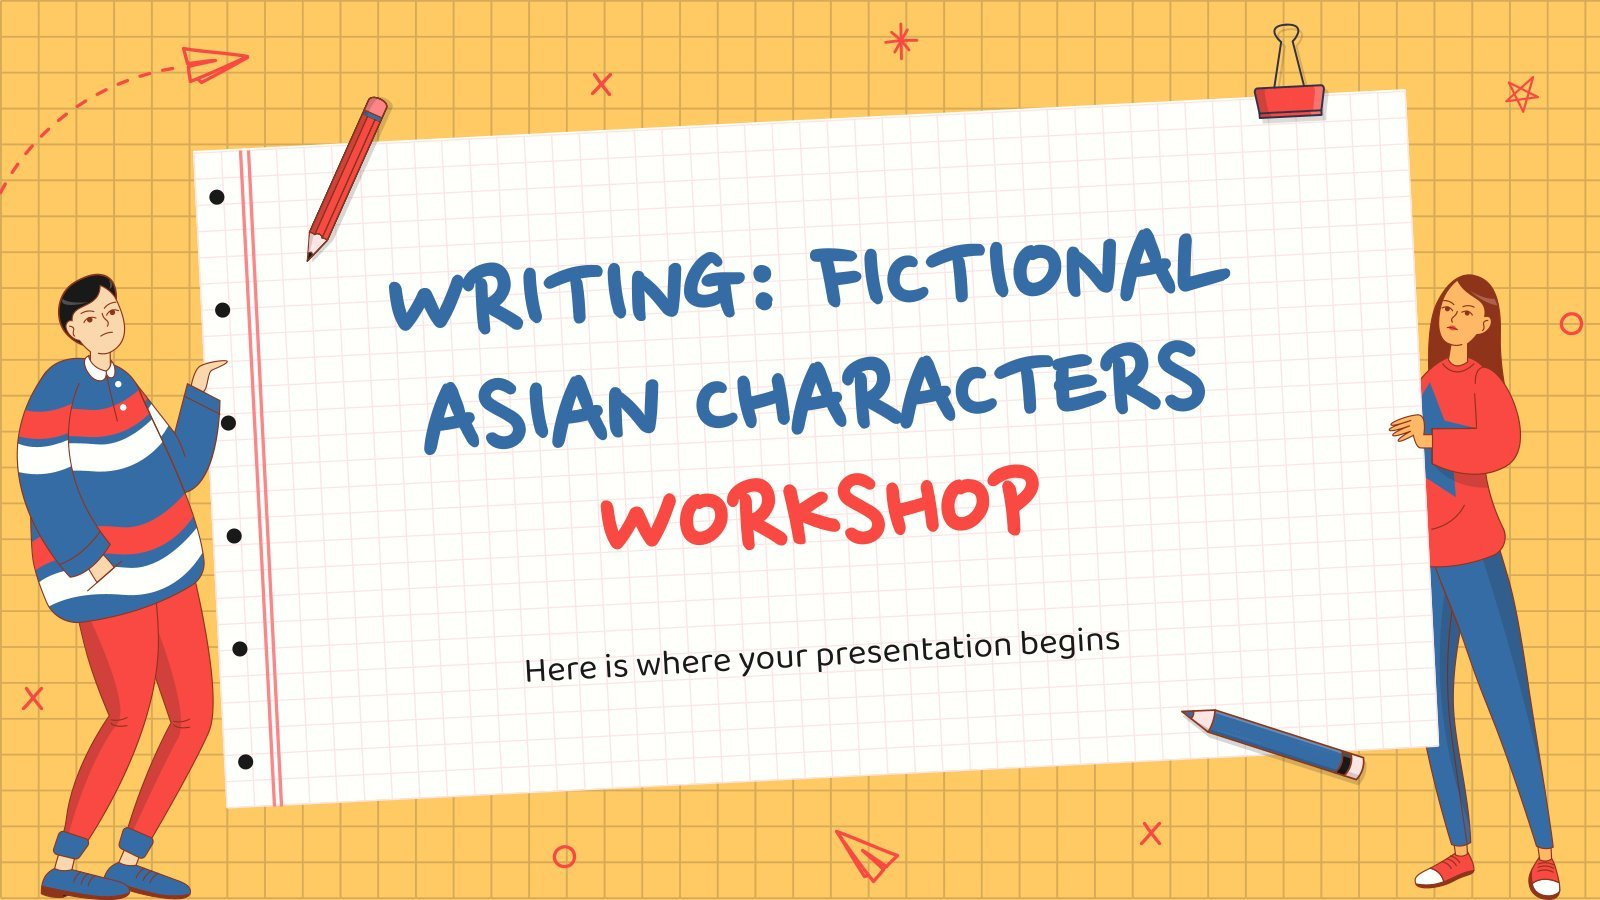 Writing Fictional Asian Characters Workshop presentation template